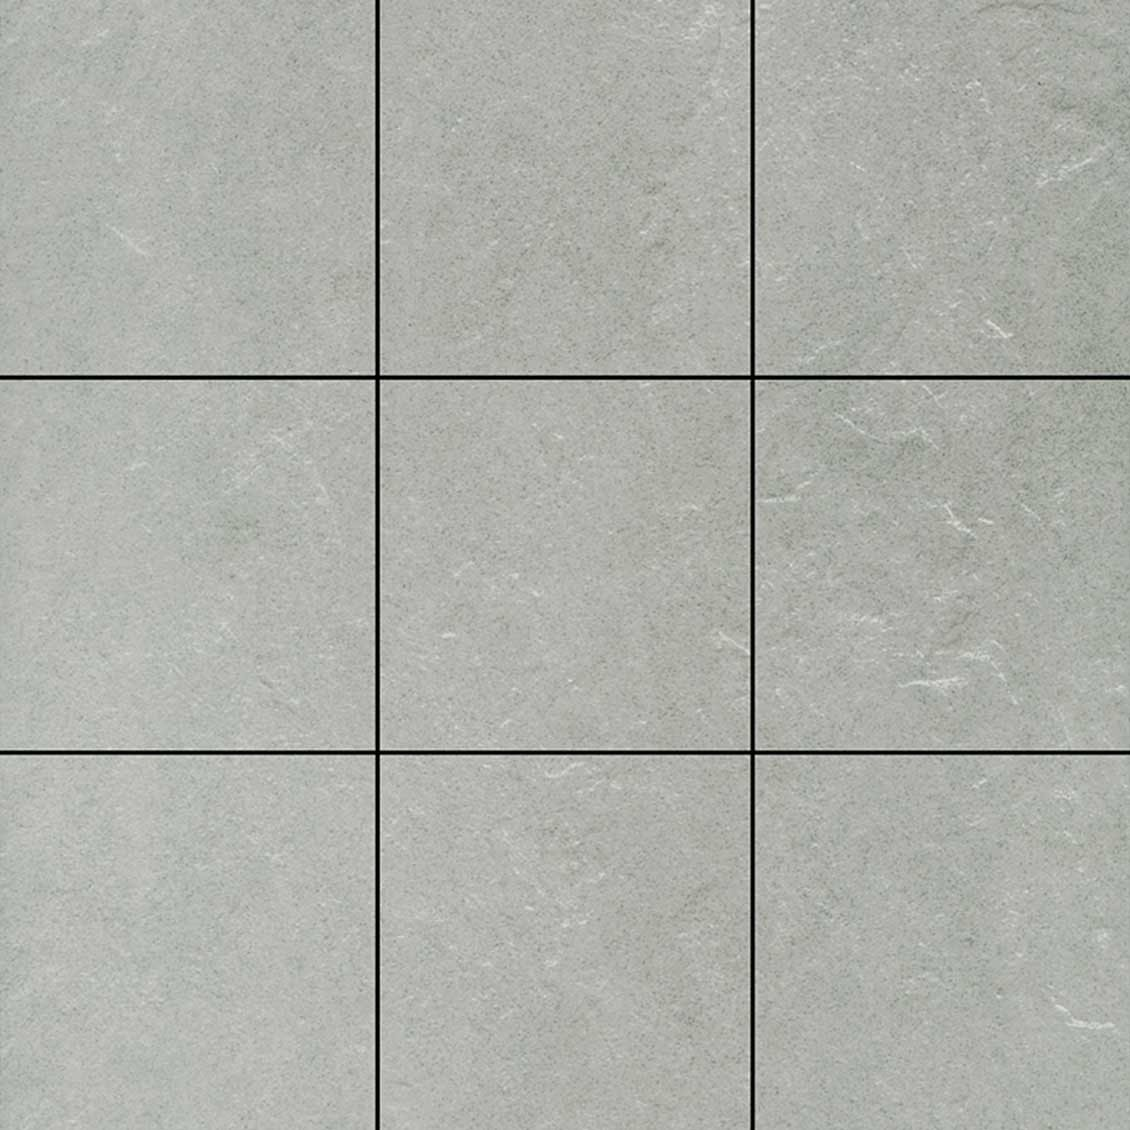 Carrelage design carrelage texture moderne design pour for Carrelage sol design pour maison